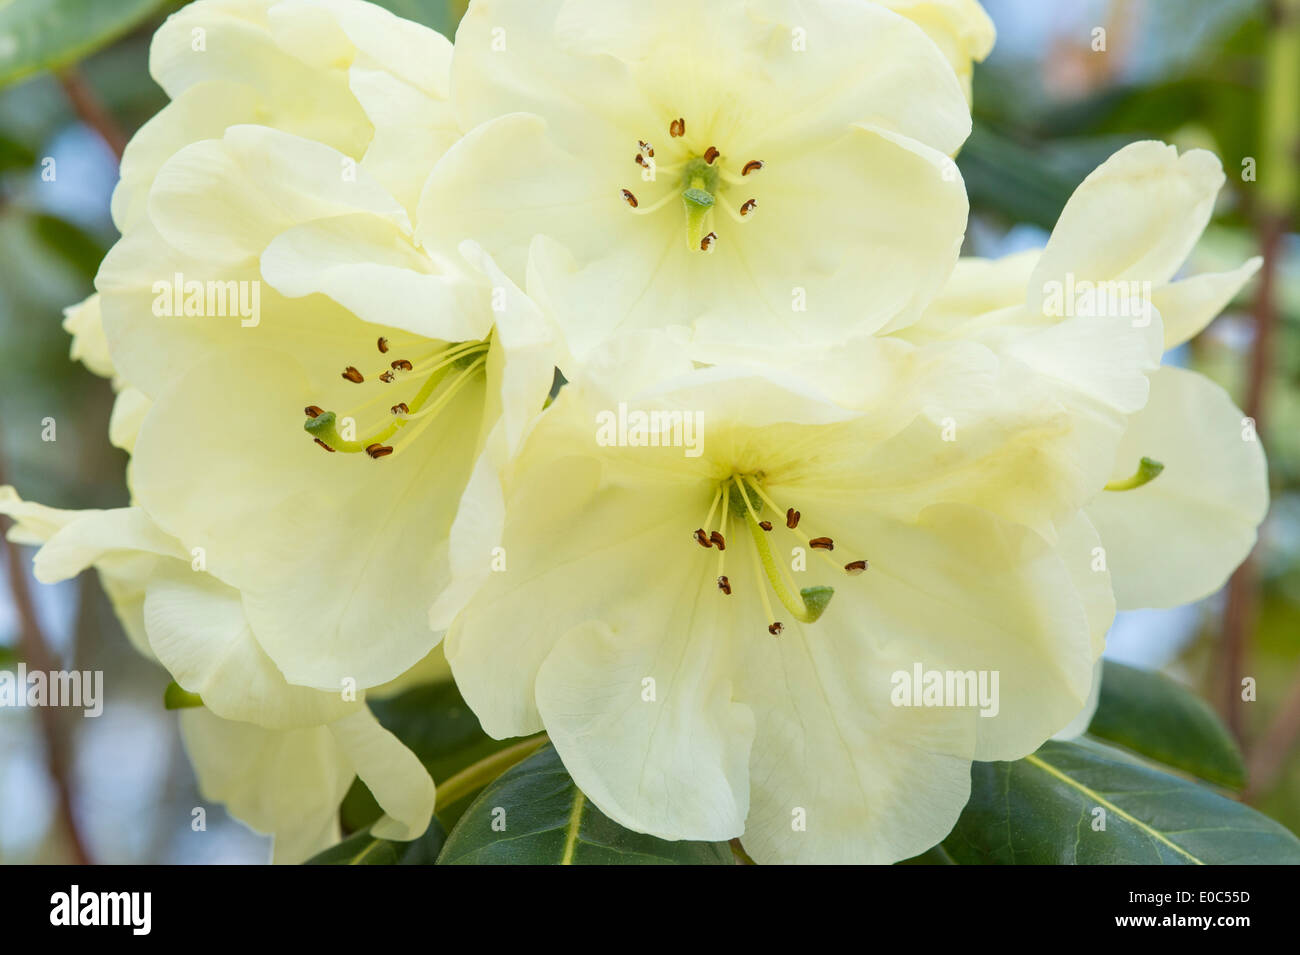 Rhododendron 'Rosa Stevenson' flowers close-up Himalayan Garden and Sculpture Park North Yorkshire England - Stock Image